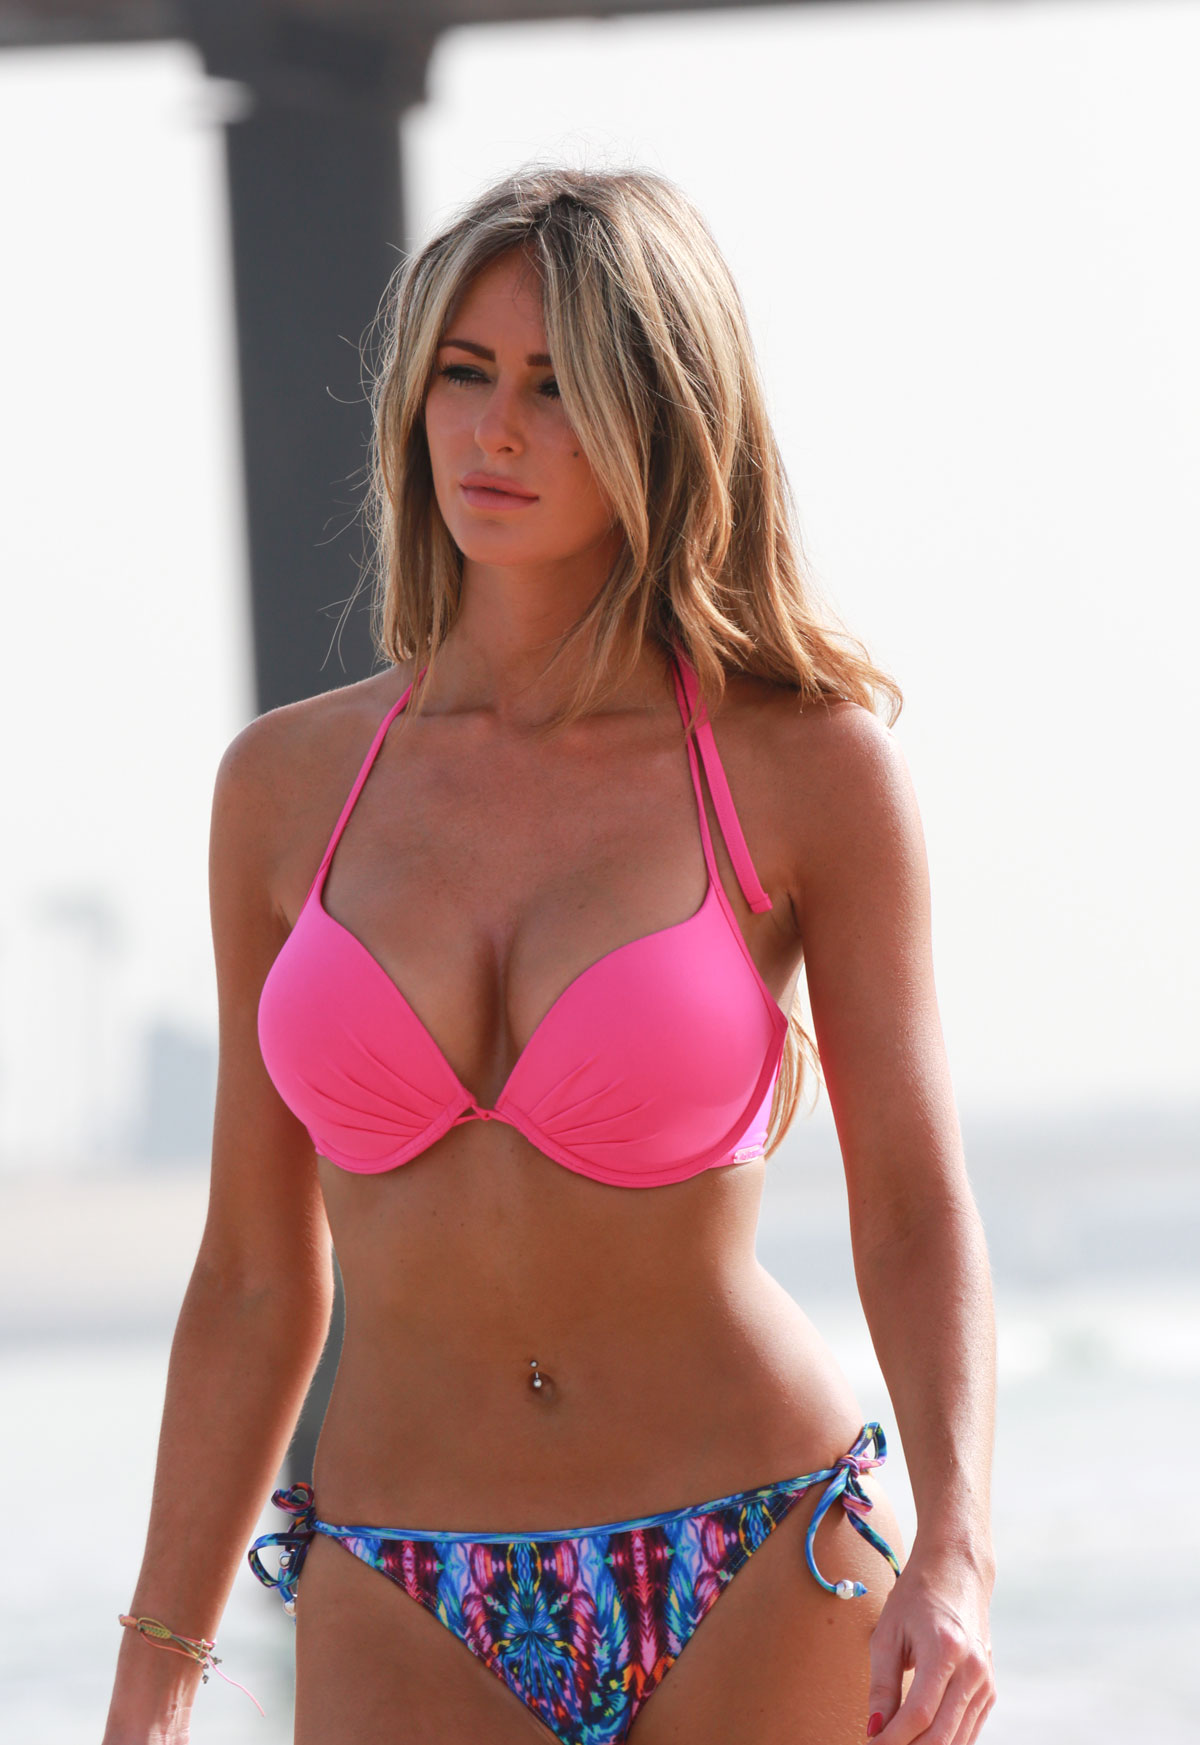 The 28 year old is a reality television star in England. Dorsett is best known for her role on the hit show The Only Way is Essex, a British equivalent of The Hills or Jersey Shore. Her time as a United WAG seems long-term, given she and boyfriend midfielder Tom Cleverley recently had a daughter together.